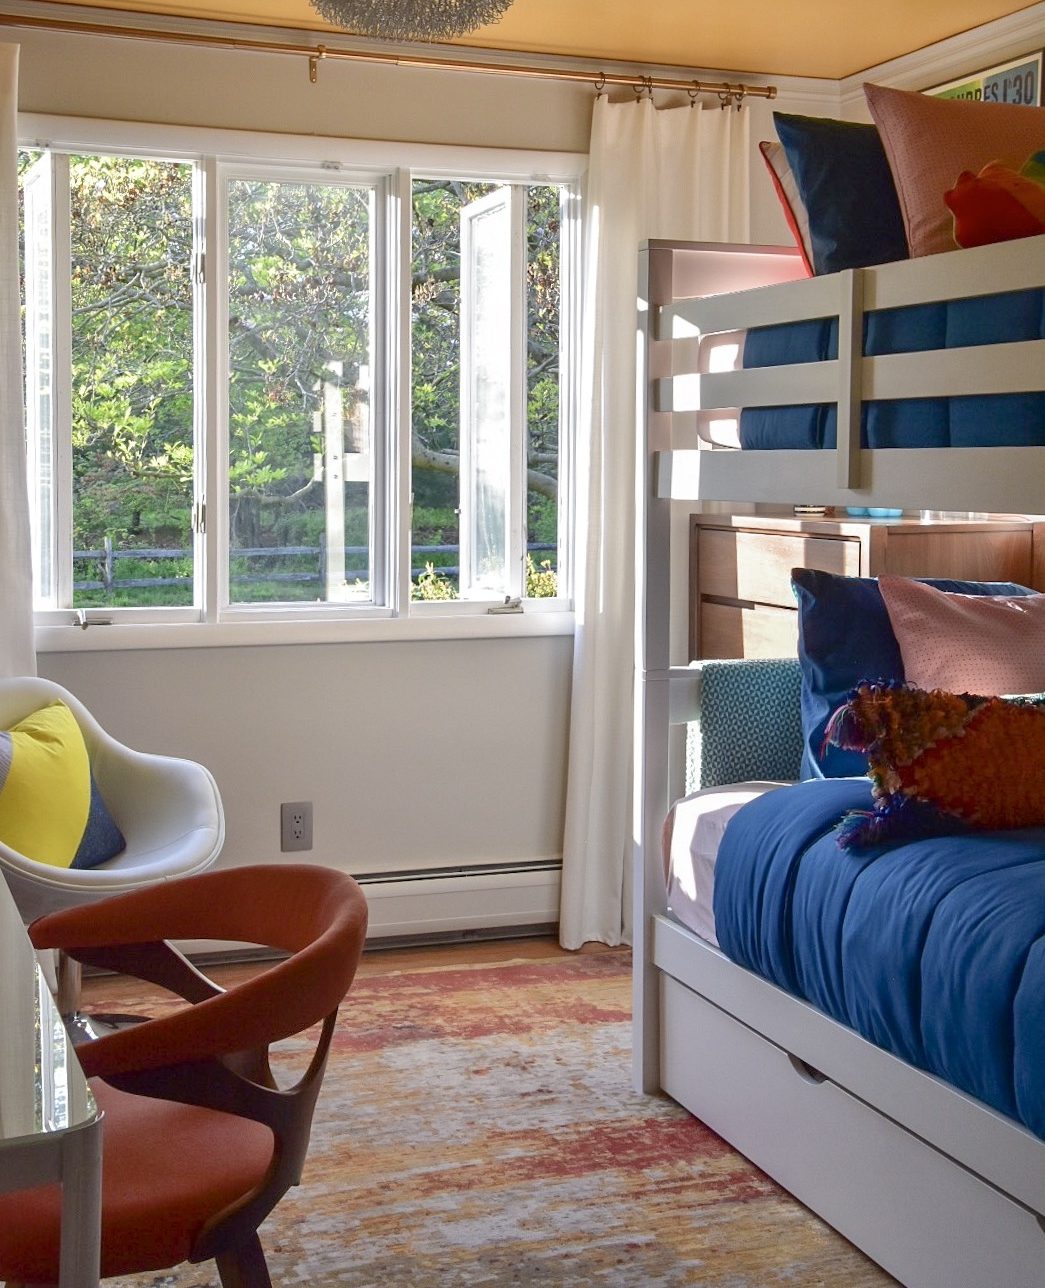 Modern colorful kid's bedroom designed by Diane Rath of The Rath Project